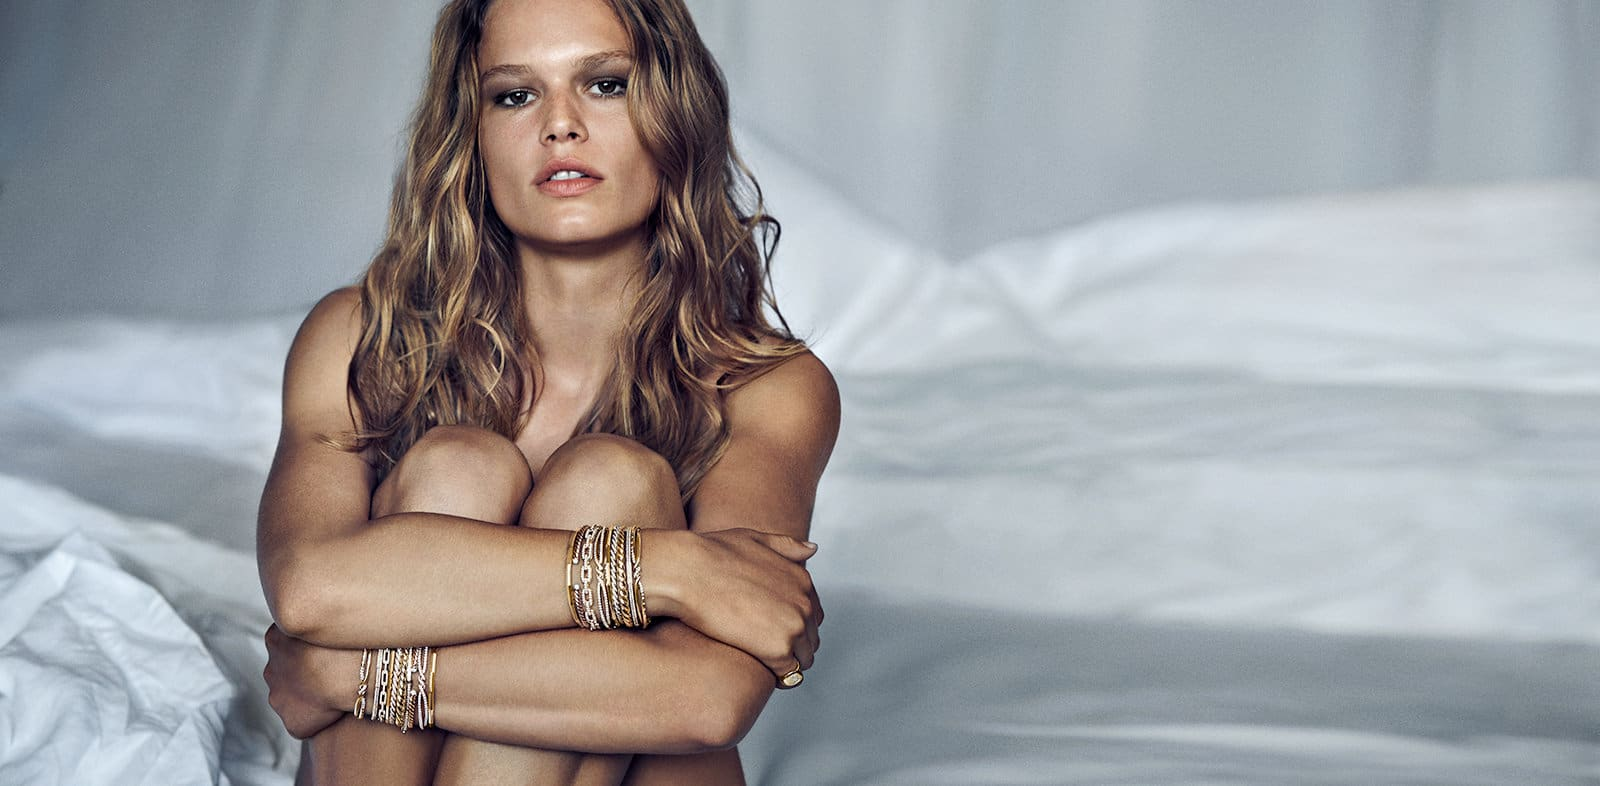 Model Anna Ewers wearing multiple David Yurman Continuance®, Stax and CableSpira bracelets in 18K yellow gold with pavé diamonds on a bed.